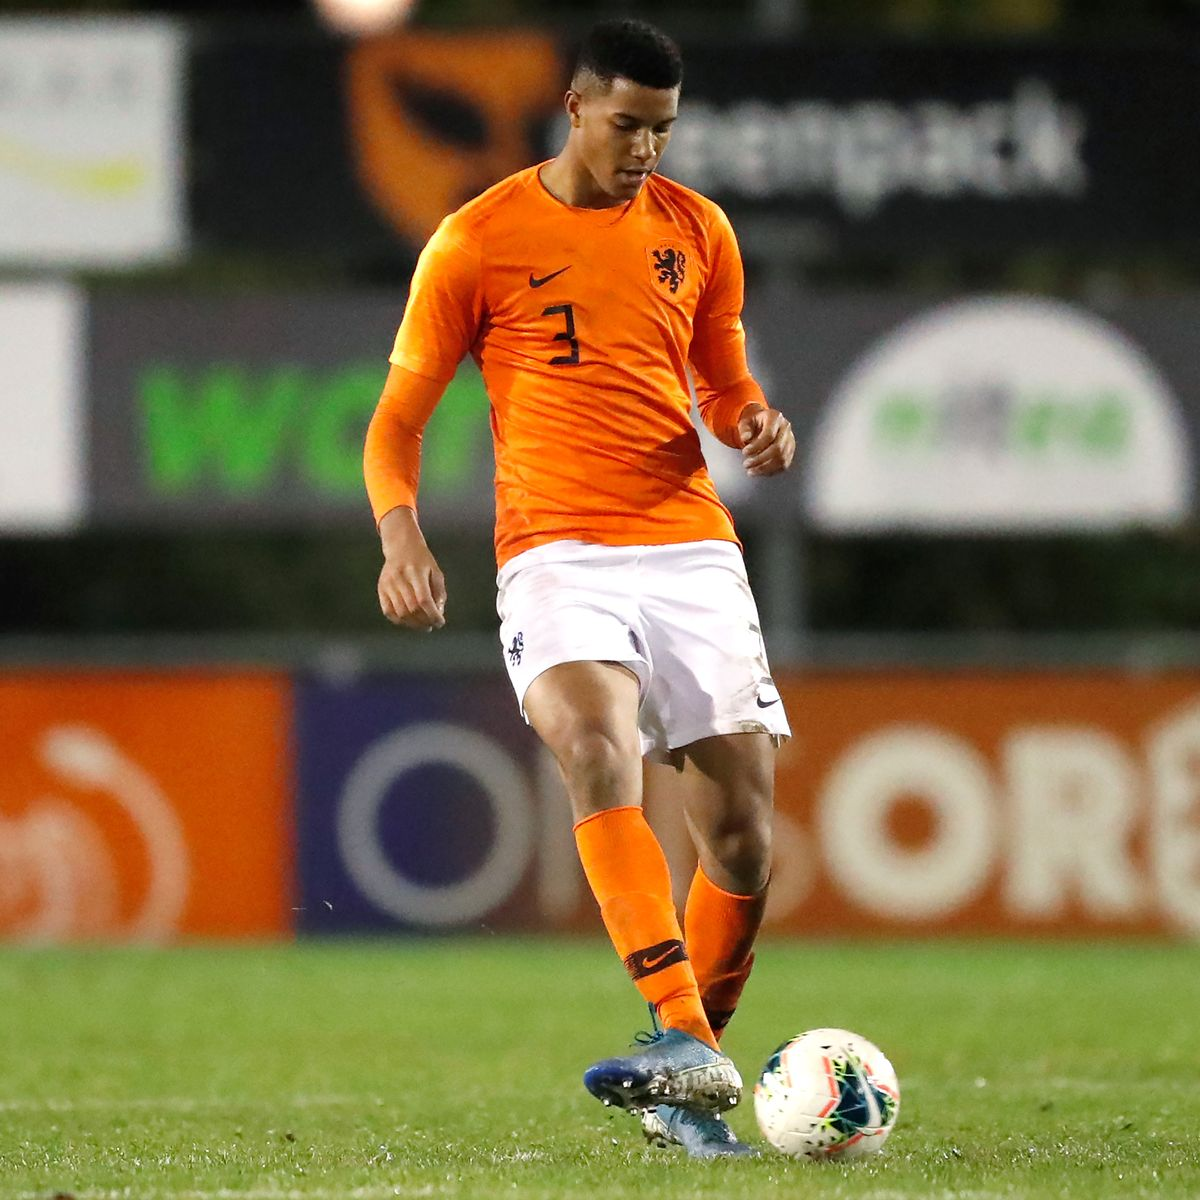 Xavier mbuyamba (born 31 december 2001) is a dutch footballer who plays as a centre back for british club chelsea. Who Is Xavier Mbuyamba The Wonderkid Dubbed The Next Virgil Van Dijk Who Chelsea Have Signed Football London